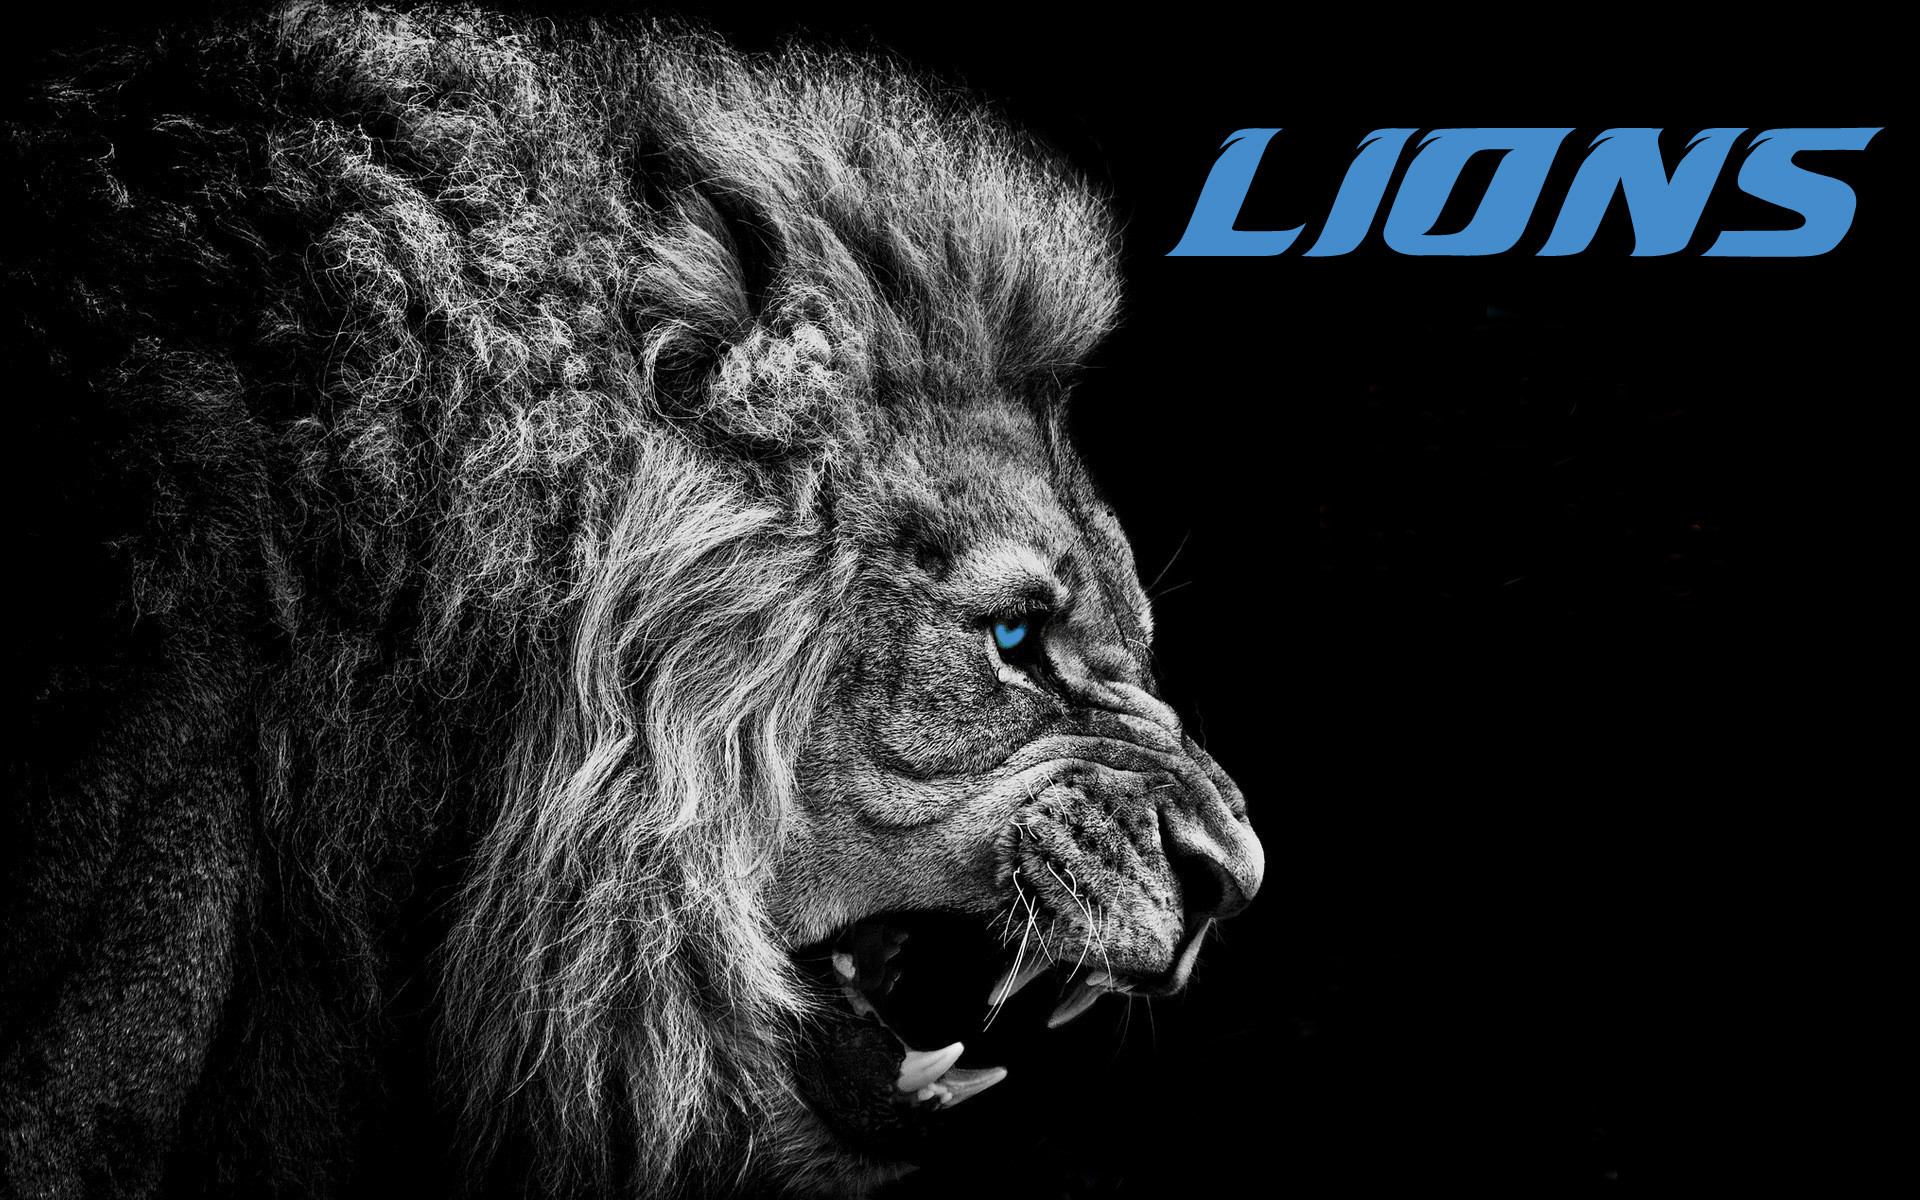 Detroit Lions Backgrounds  PixelsTalk Best Detroit Lions Wallpaper For Desktop  Wallpaper Box 1920x1200